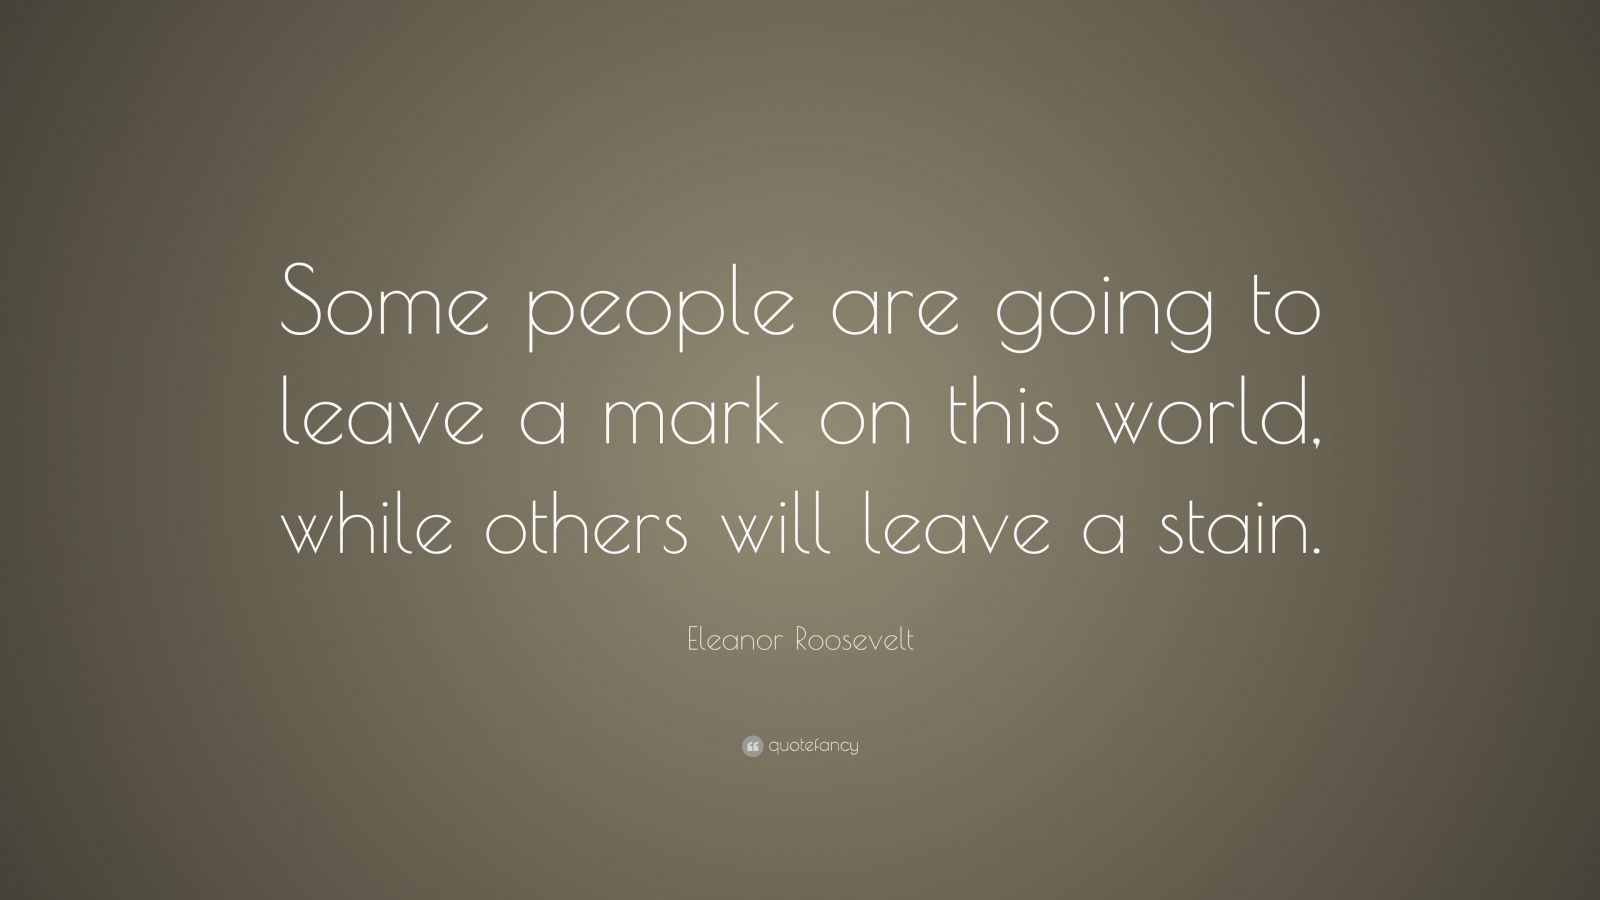 """Eleanor Roosevelt Quote: """"Some people are going to leave a mark on this world, while others will leave a stain."""""""